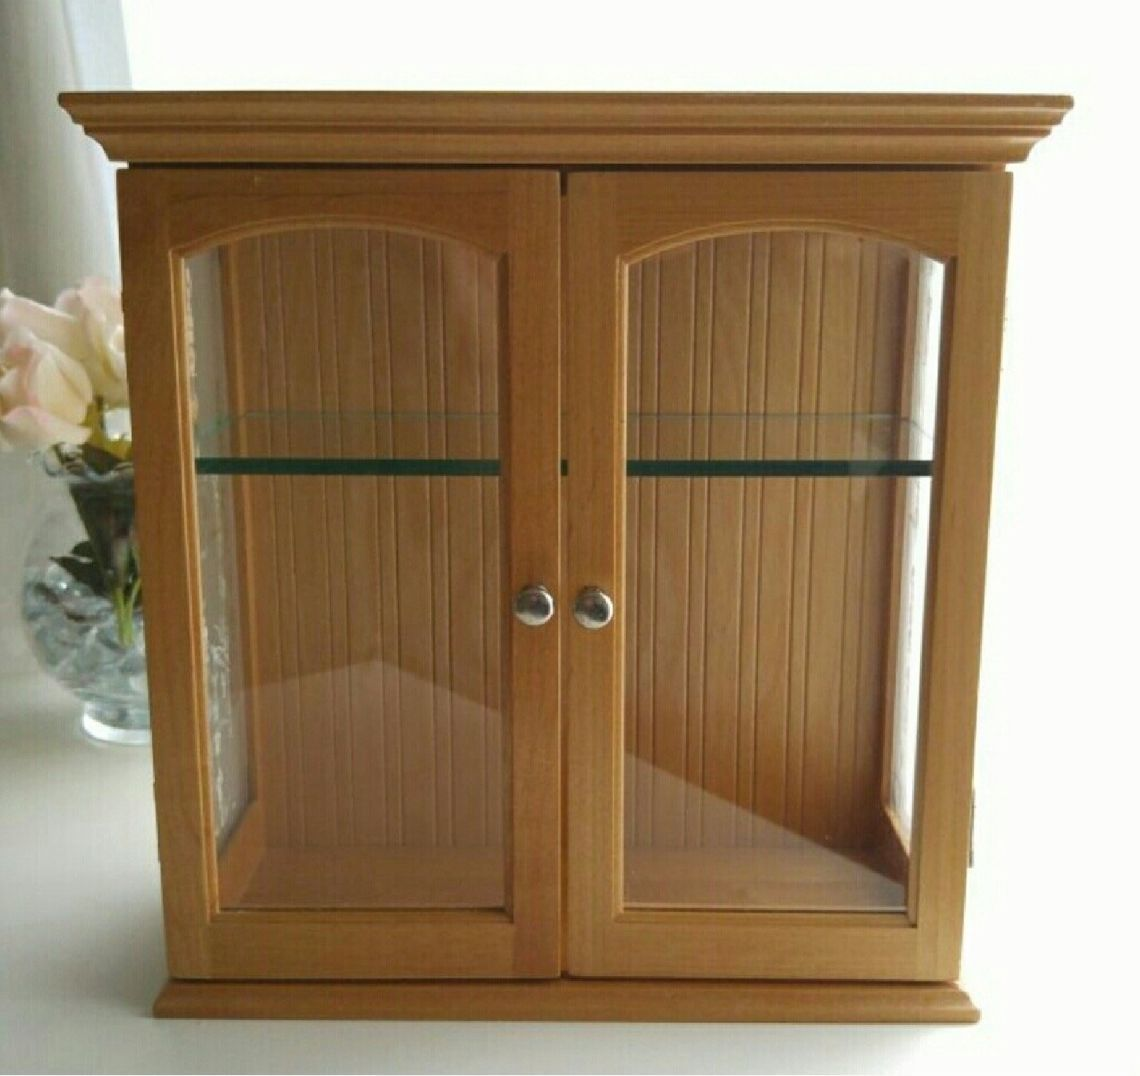 ⚘ Wood/Glass Curio Cabinet - Mercari: BUY & SELL THINGS YOU LOVE